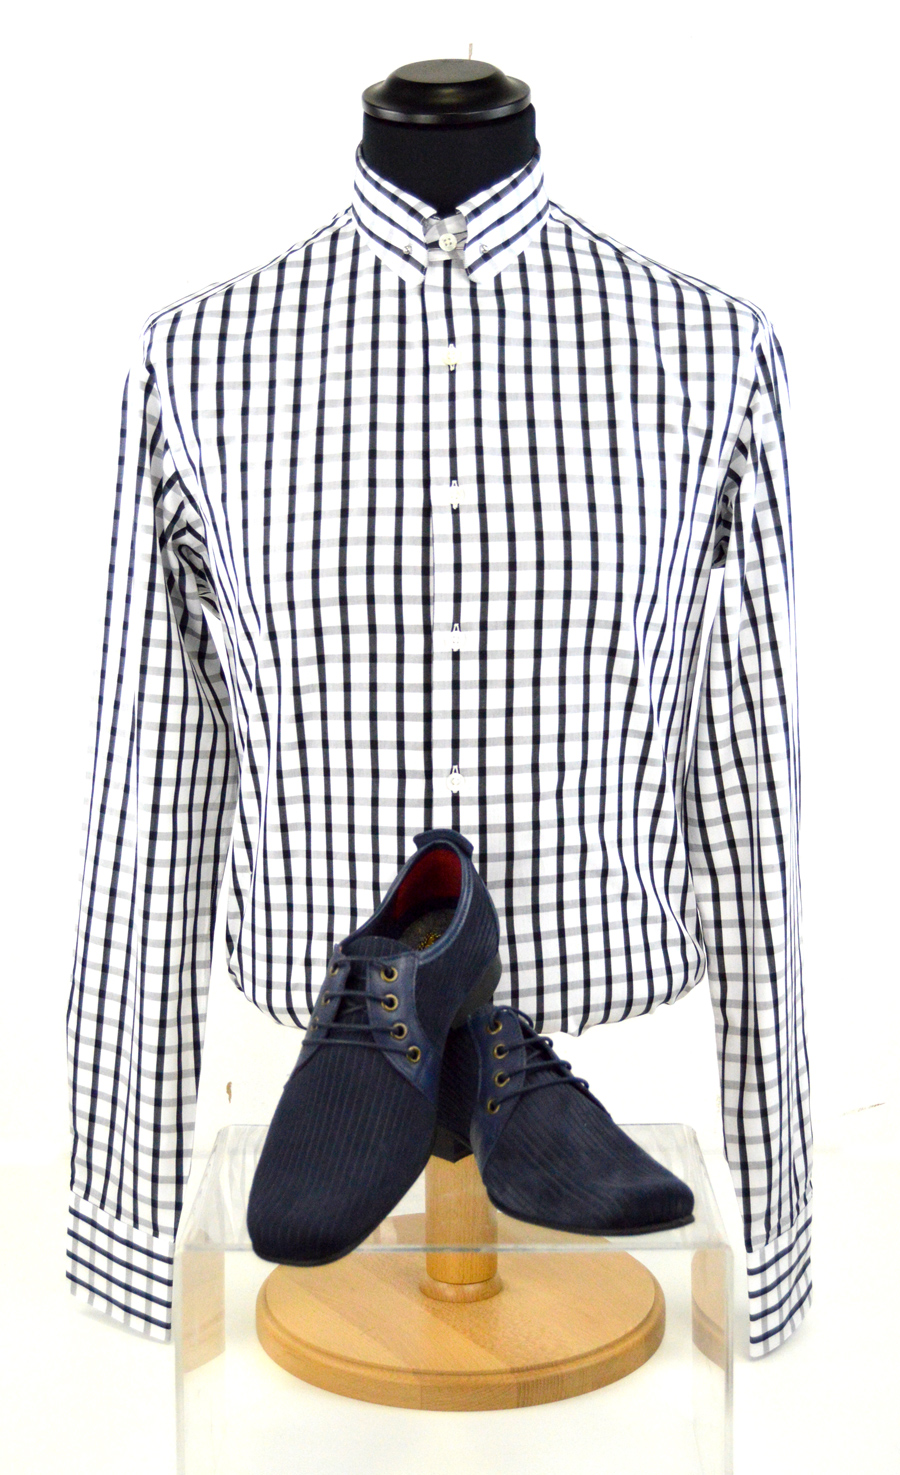 modshoes-suede-corded-shoes-exclusive-colours-and-hawkins-sherperds-shirt-checked-03